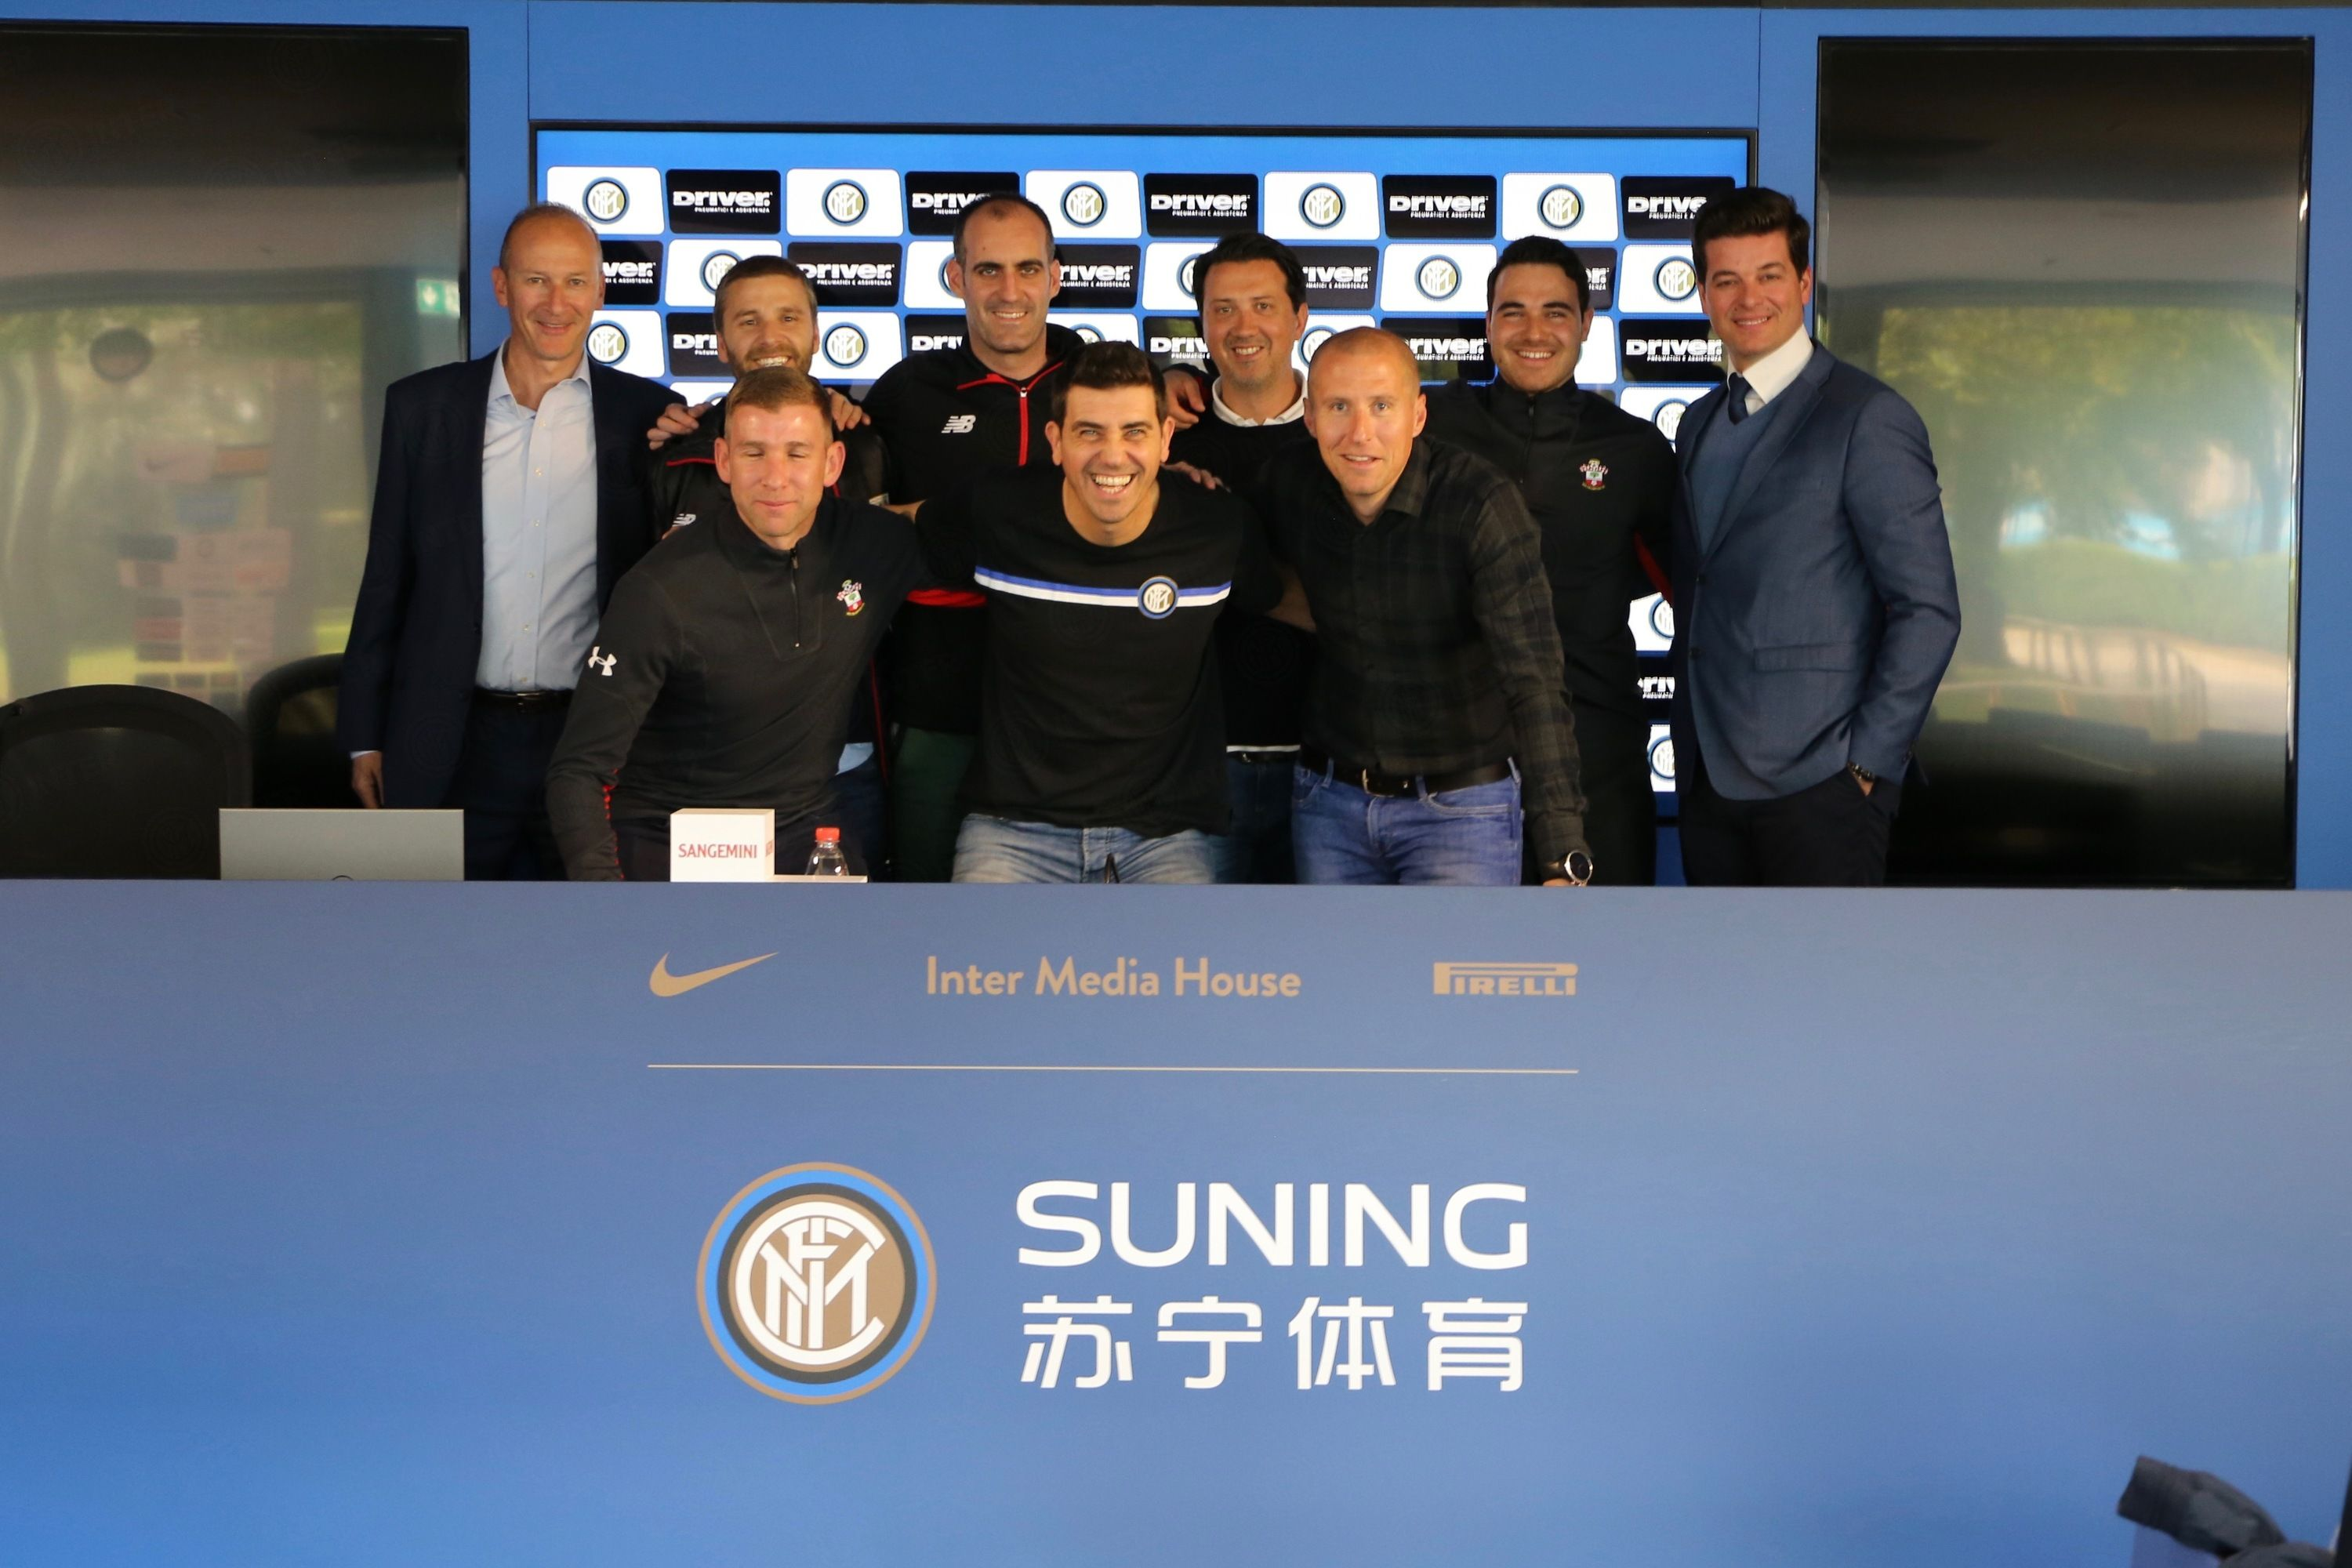 Inter's Elite Academy involved in a Working Group with other European clubs